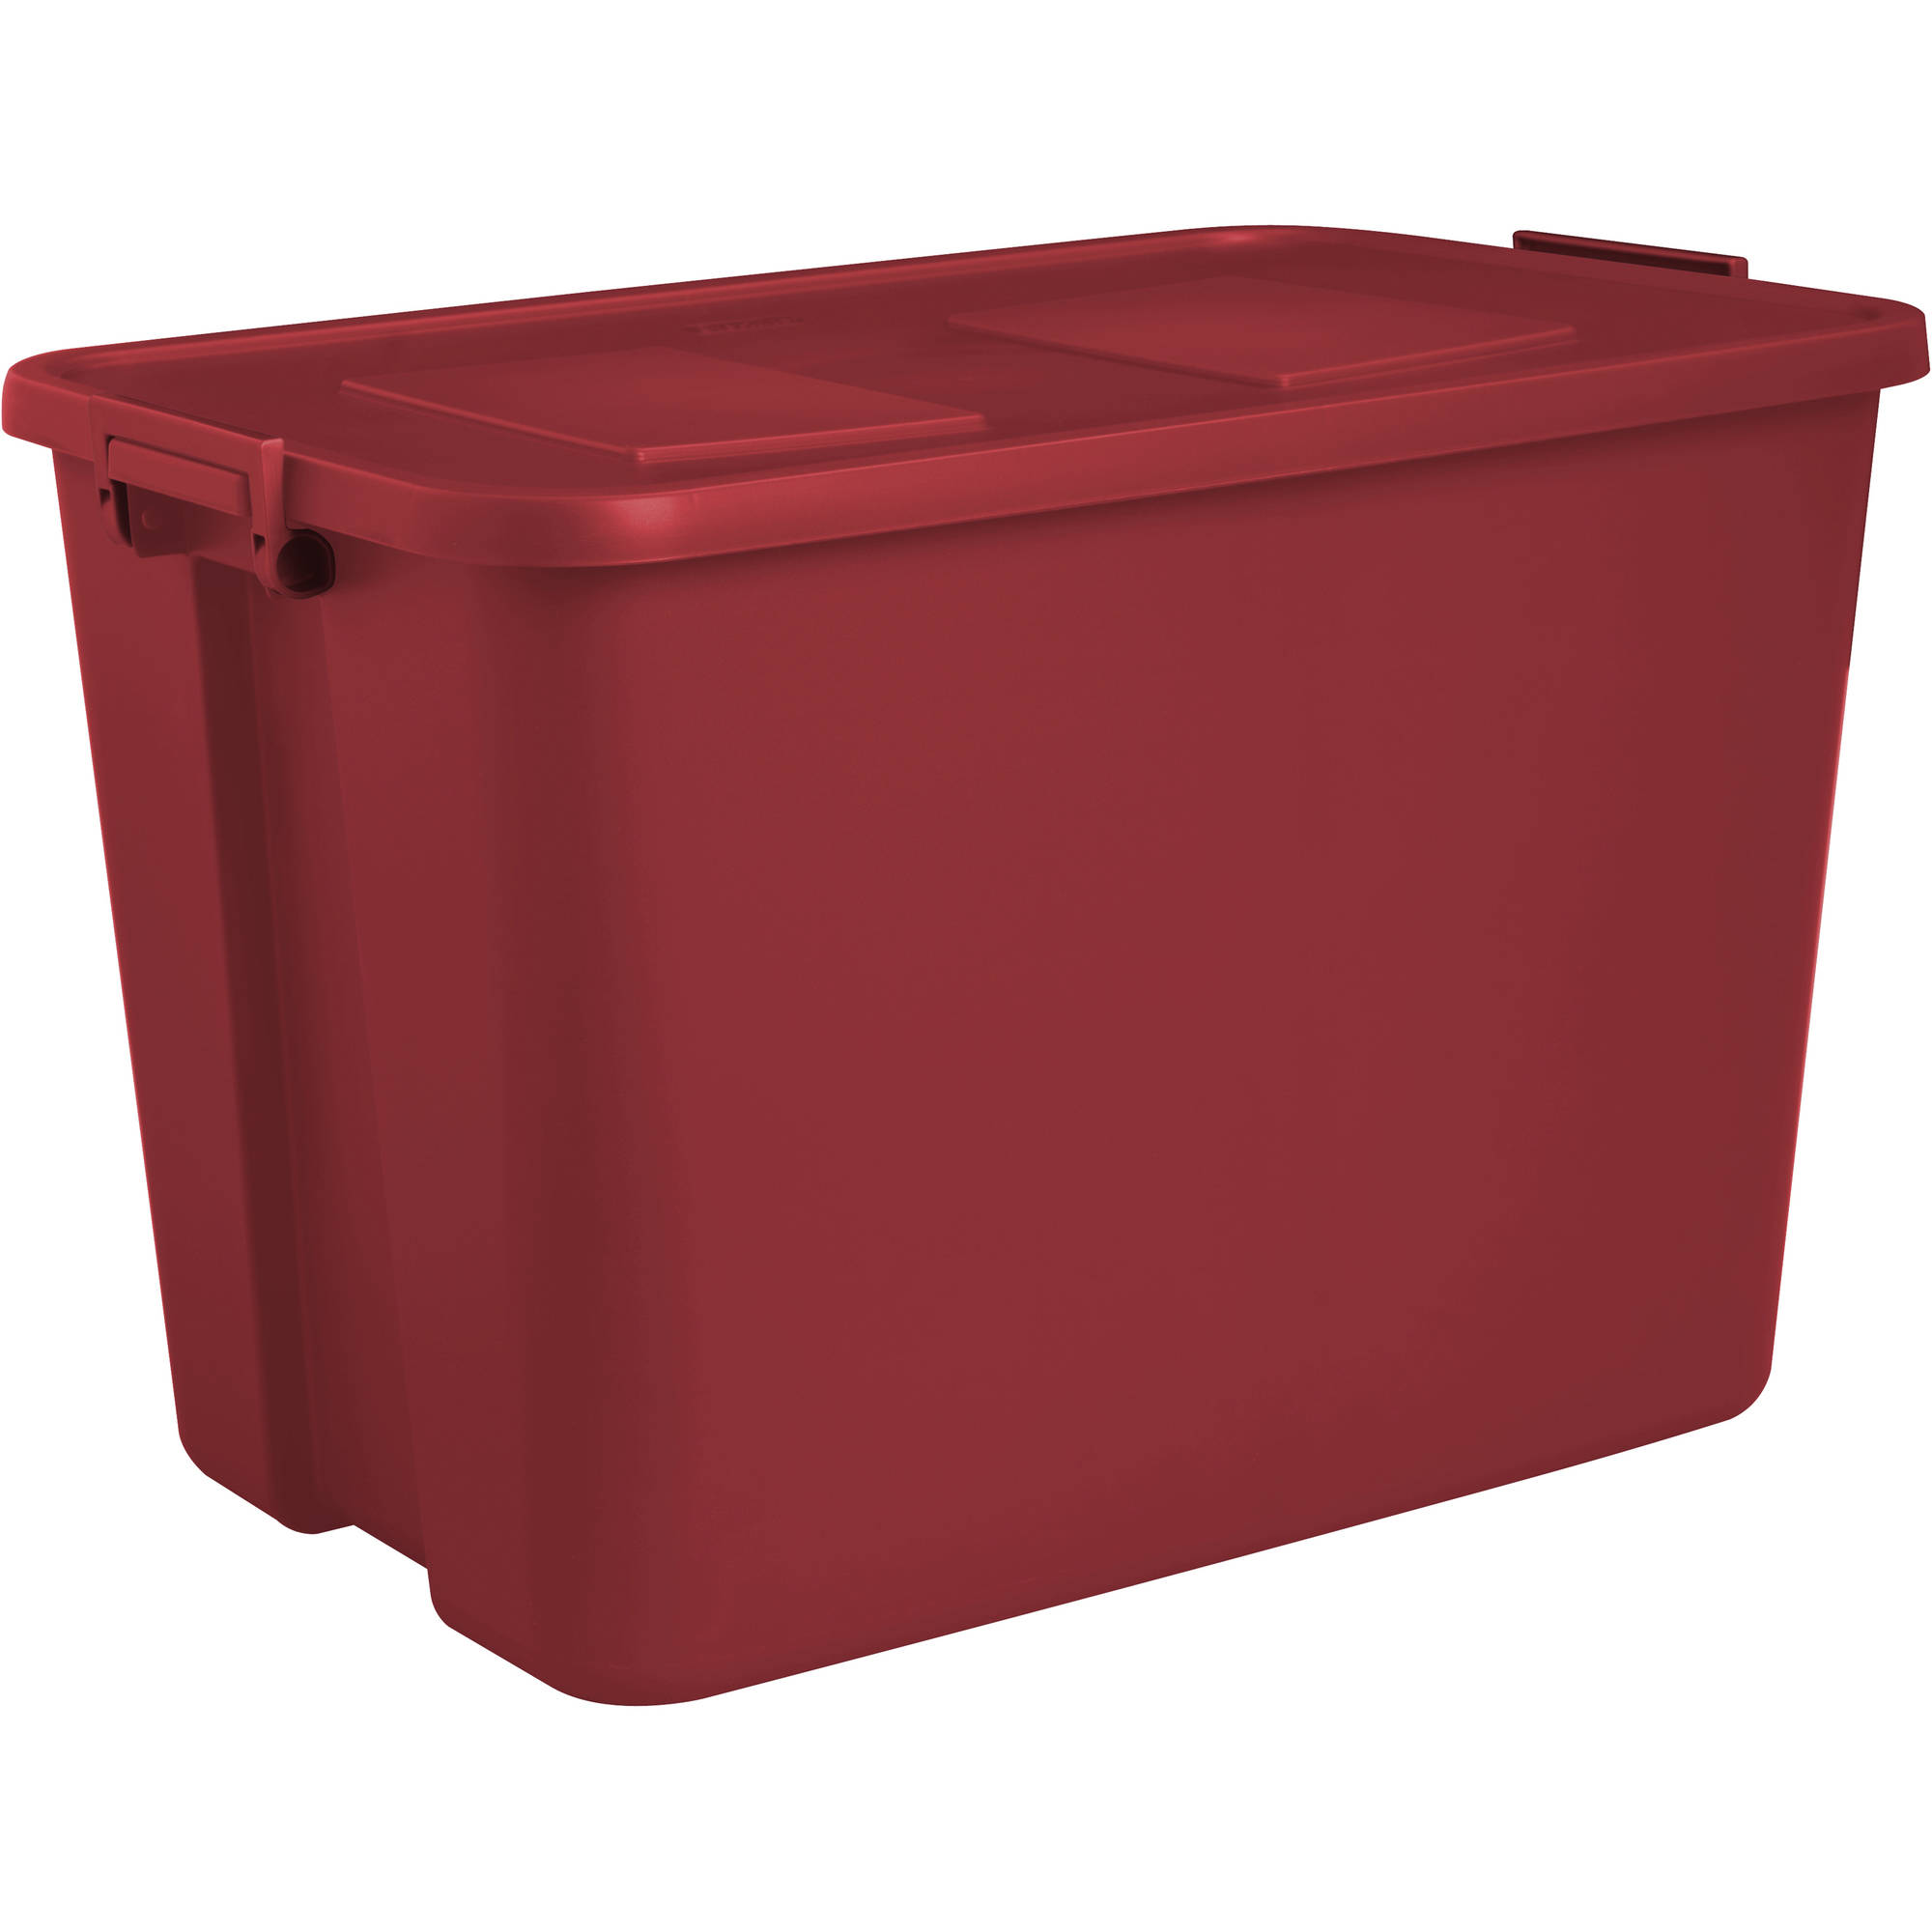 Sterilite 32-Gallon Latch Tote, Infra Red (Available in Case of 4 or Single Unit)